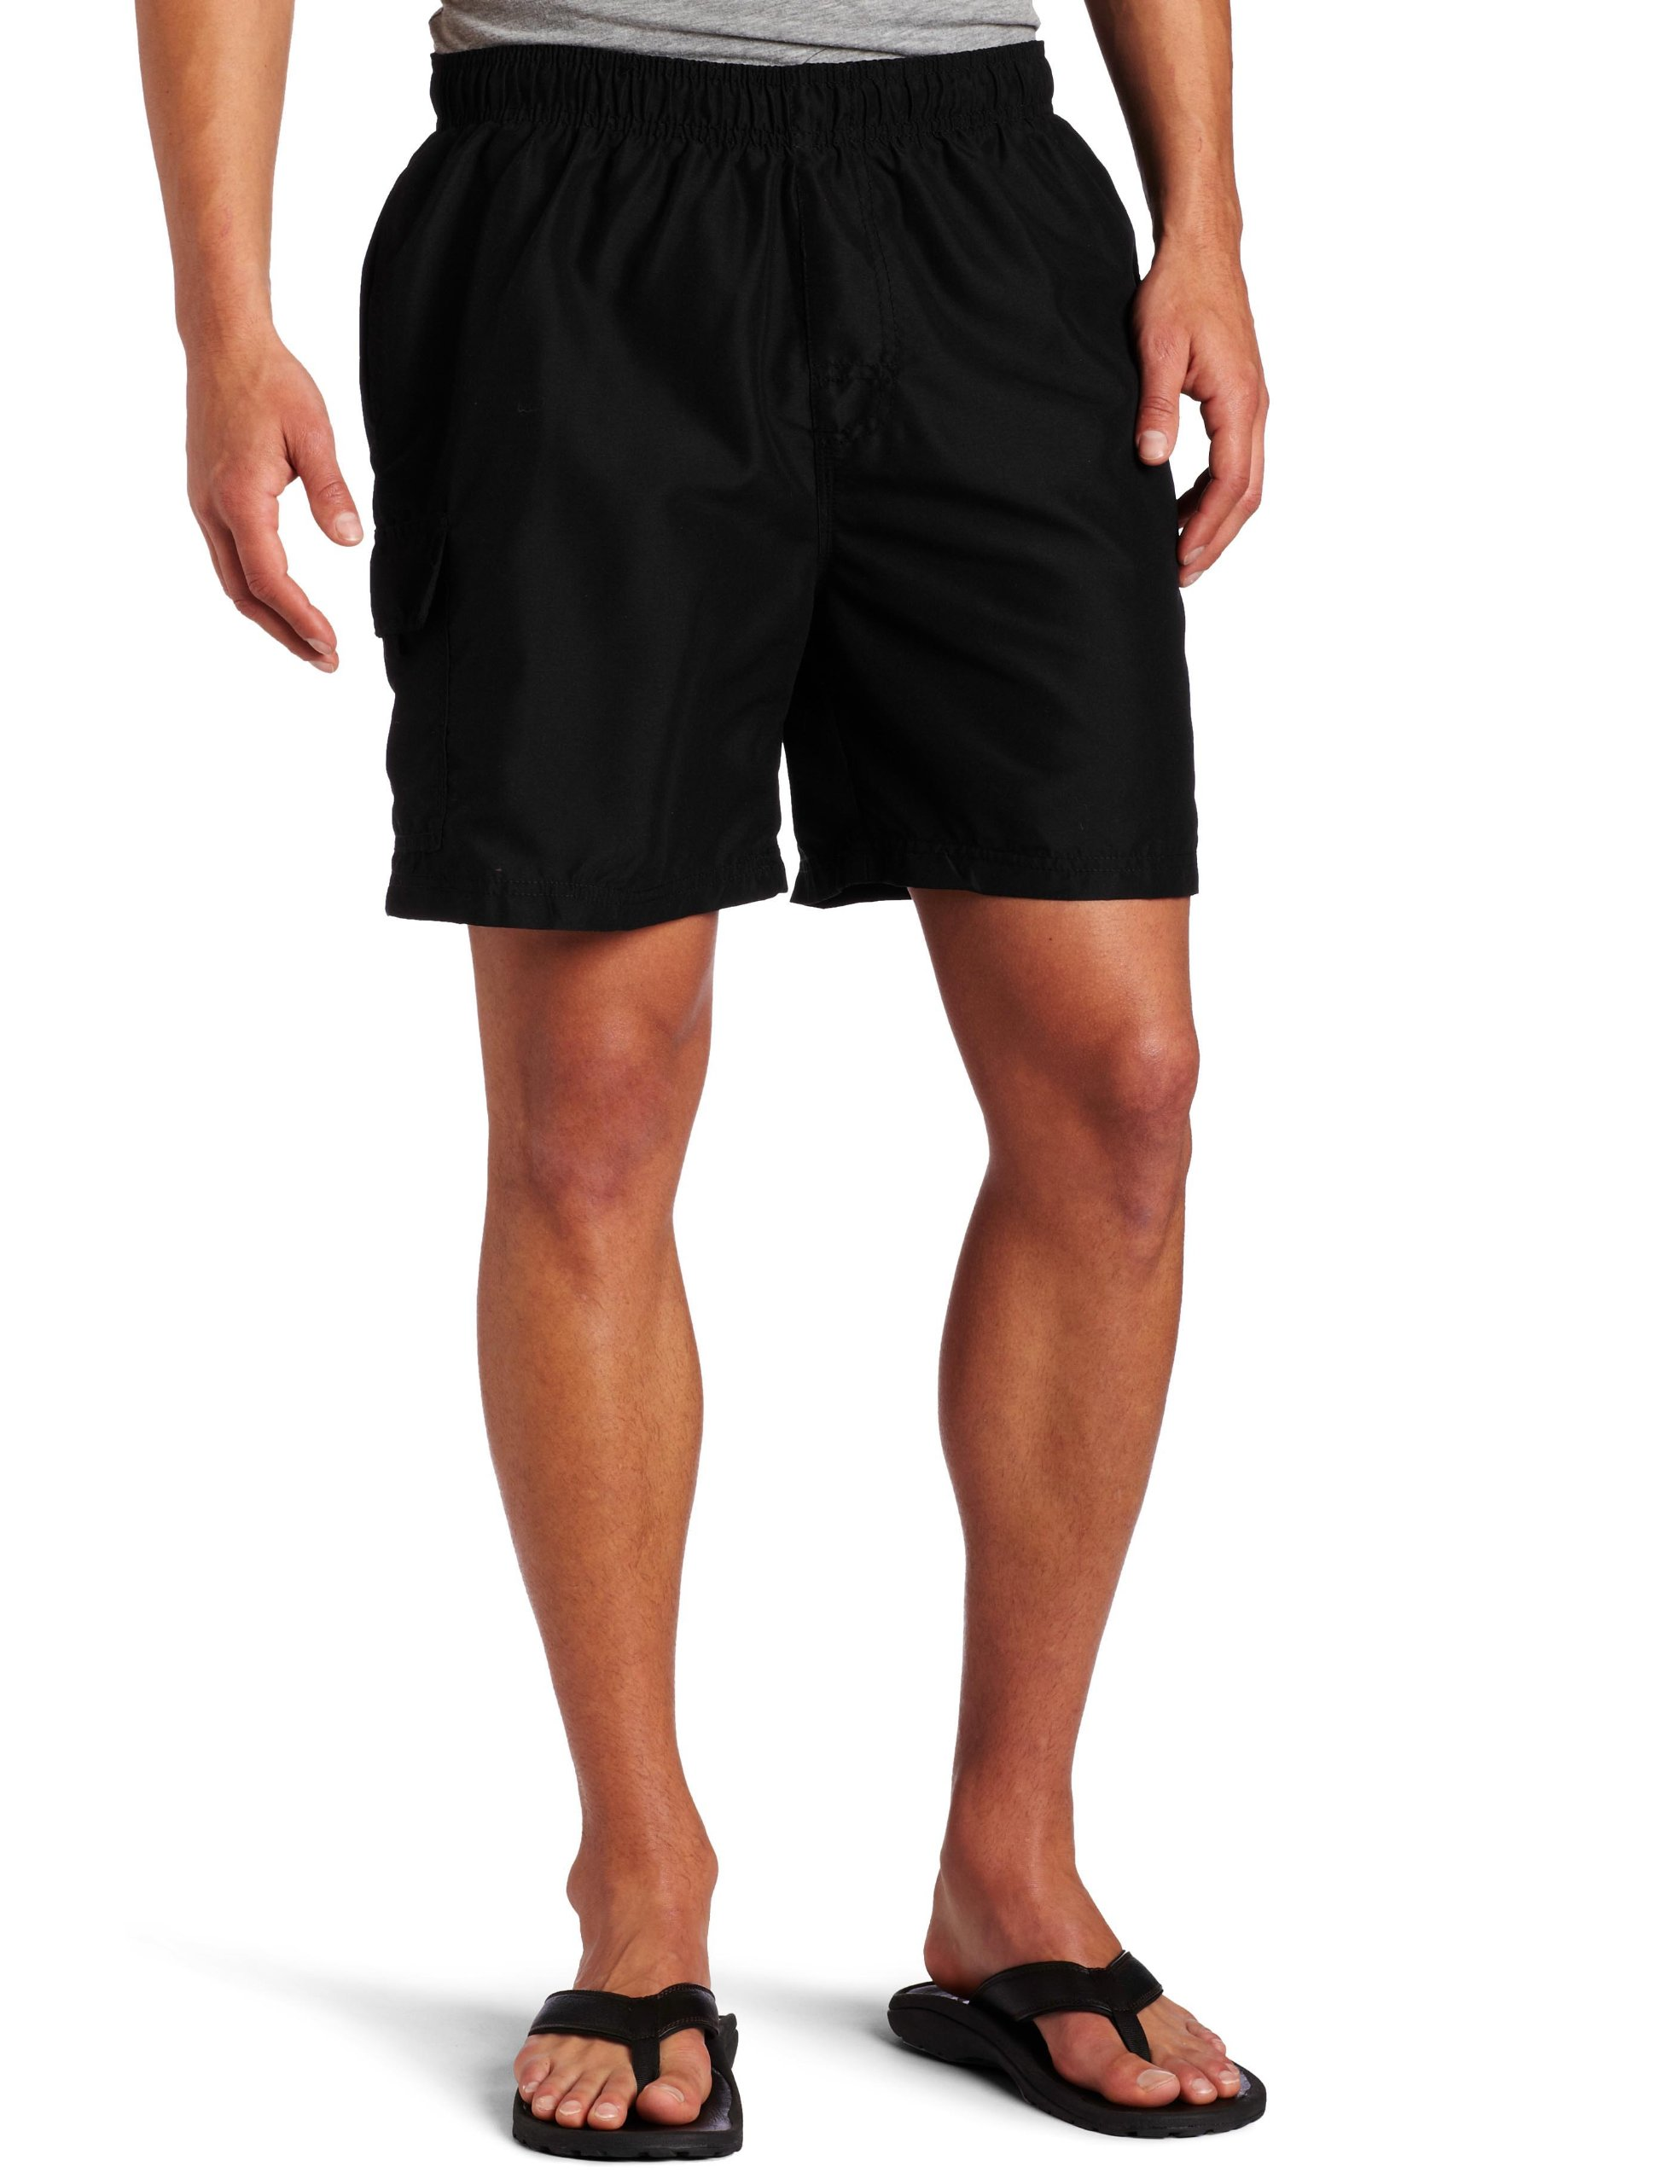 Kanu Surf Men's Havana Trunks, Black, Medium